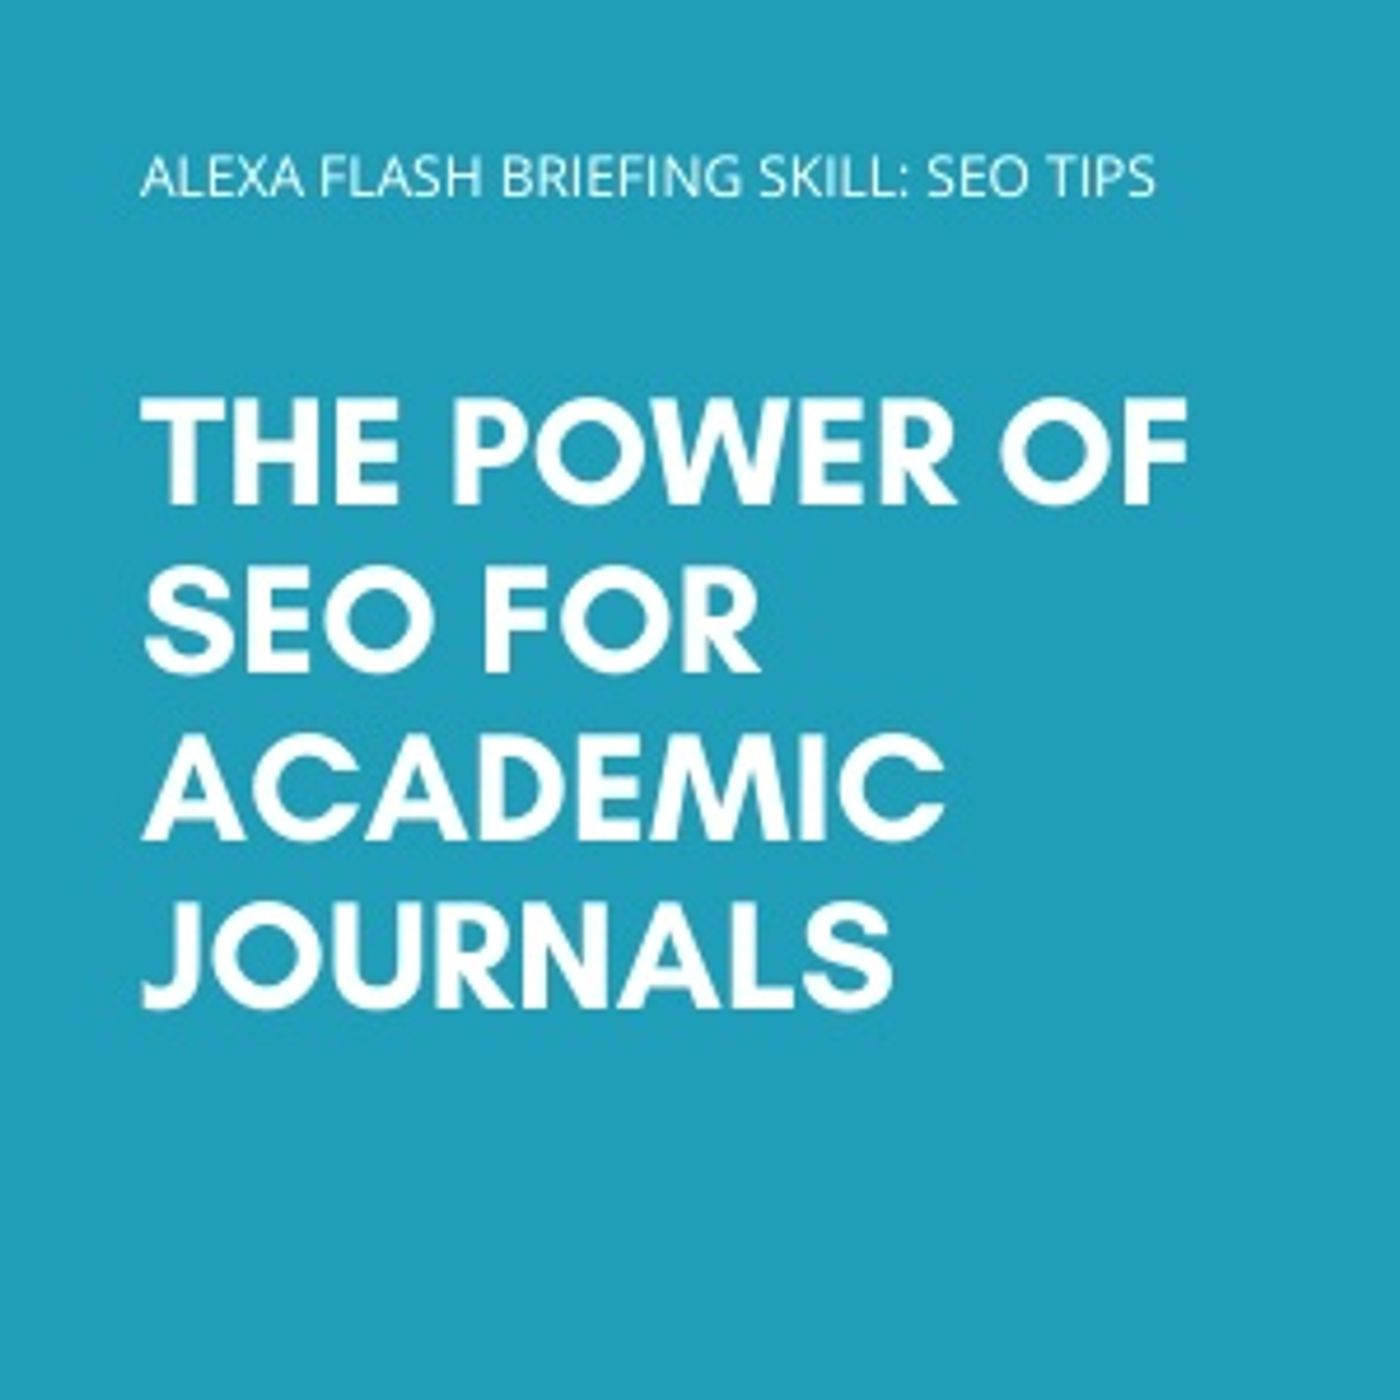 The power of SEO for Academic Journals